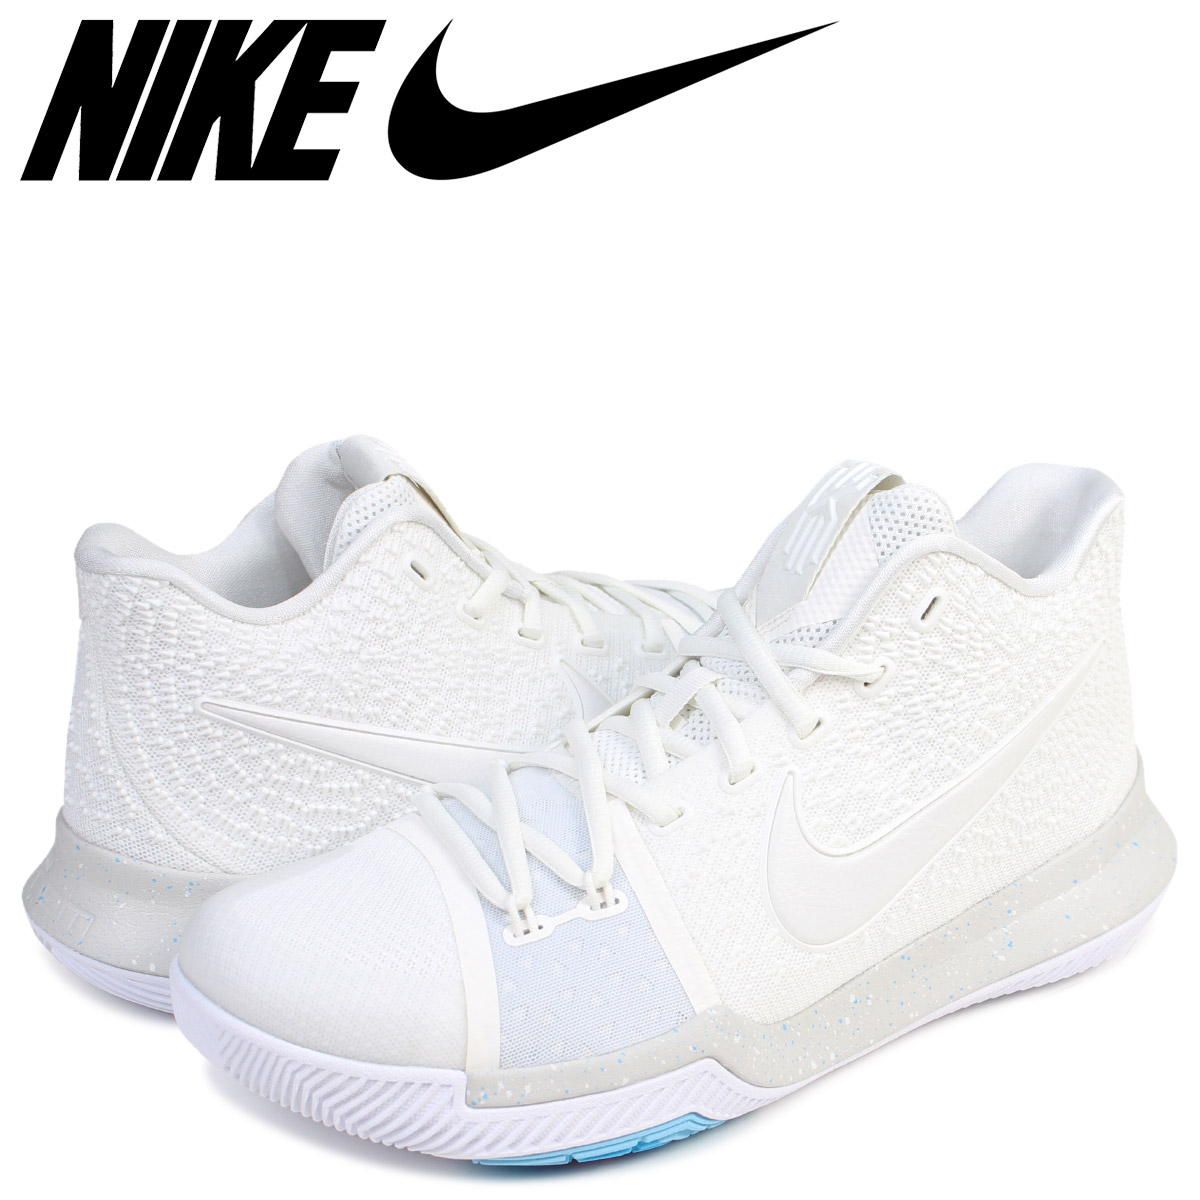 the latest 44aa3 2c6de NIKE Nike chi Lee 3 sneakers KYRIE 3 EP SUMMER PACK men 852,396-101 shoes  ivory